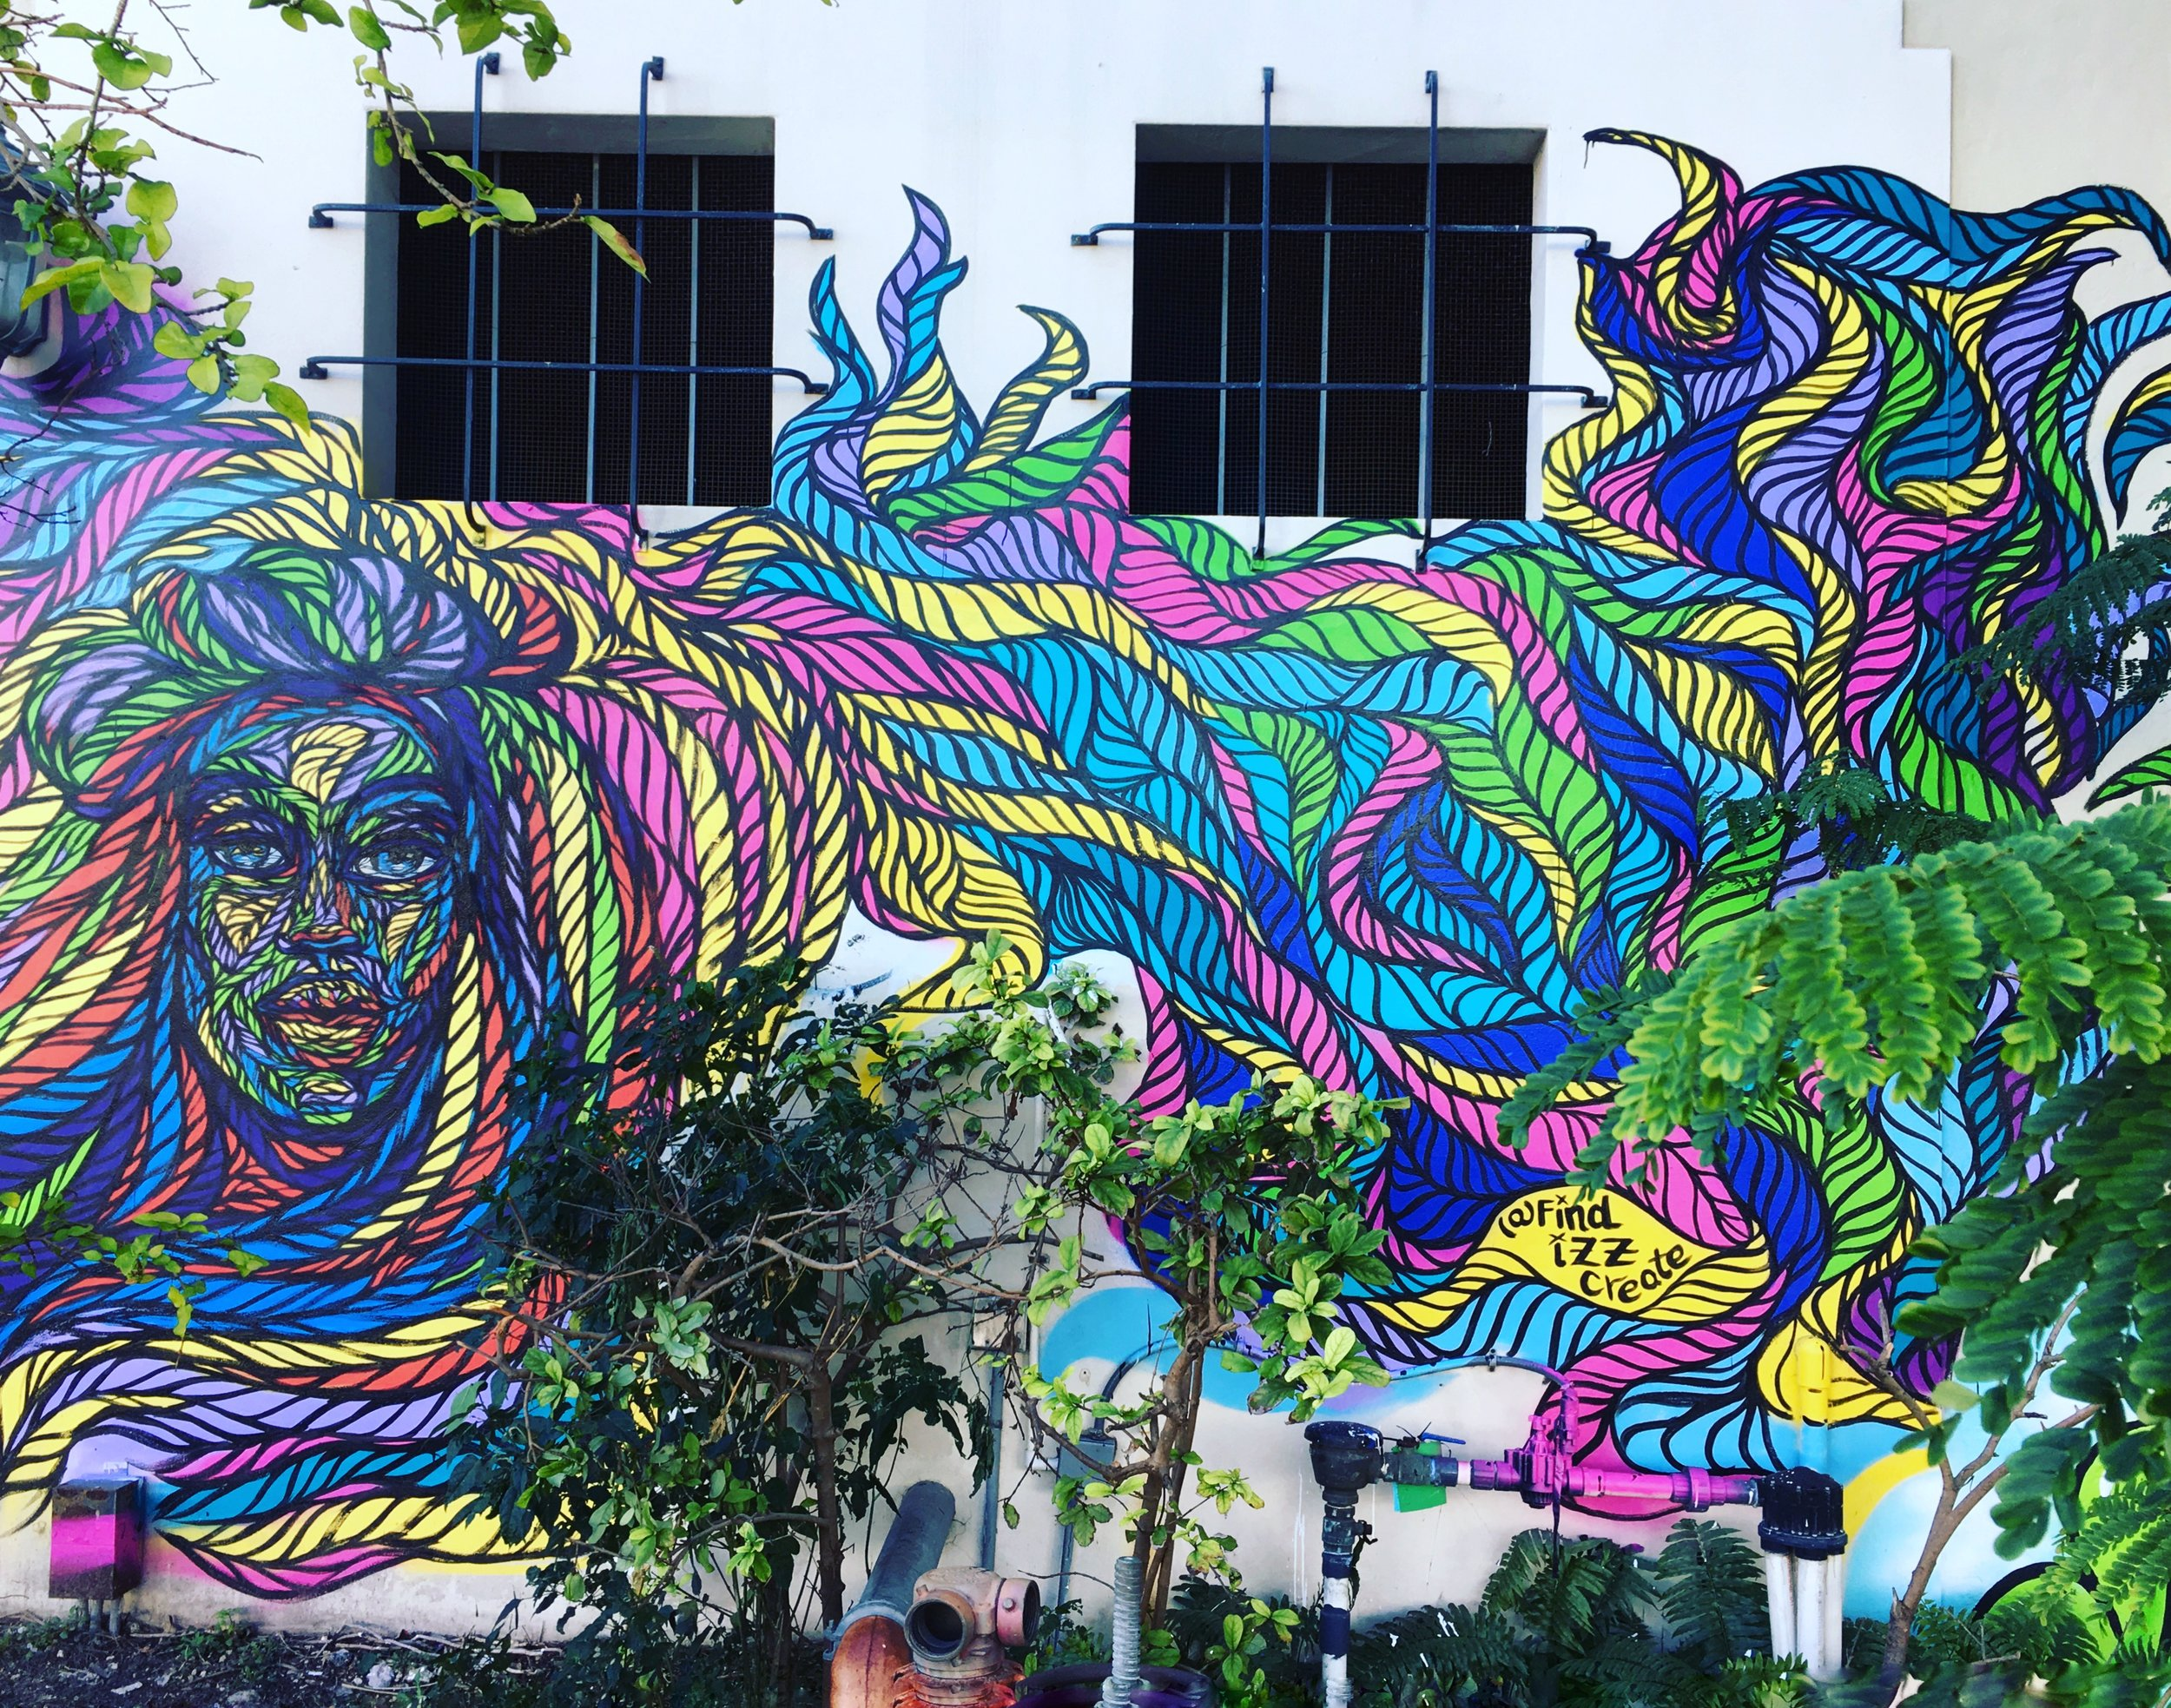 Miami Art Basel 2017- 2nd ave and 3rd Miami, FL